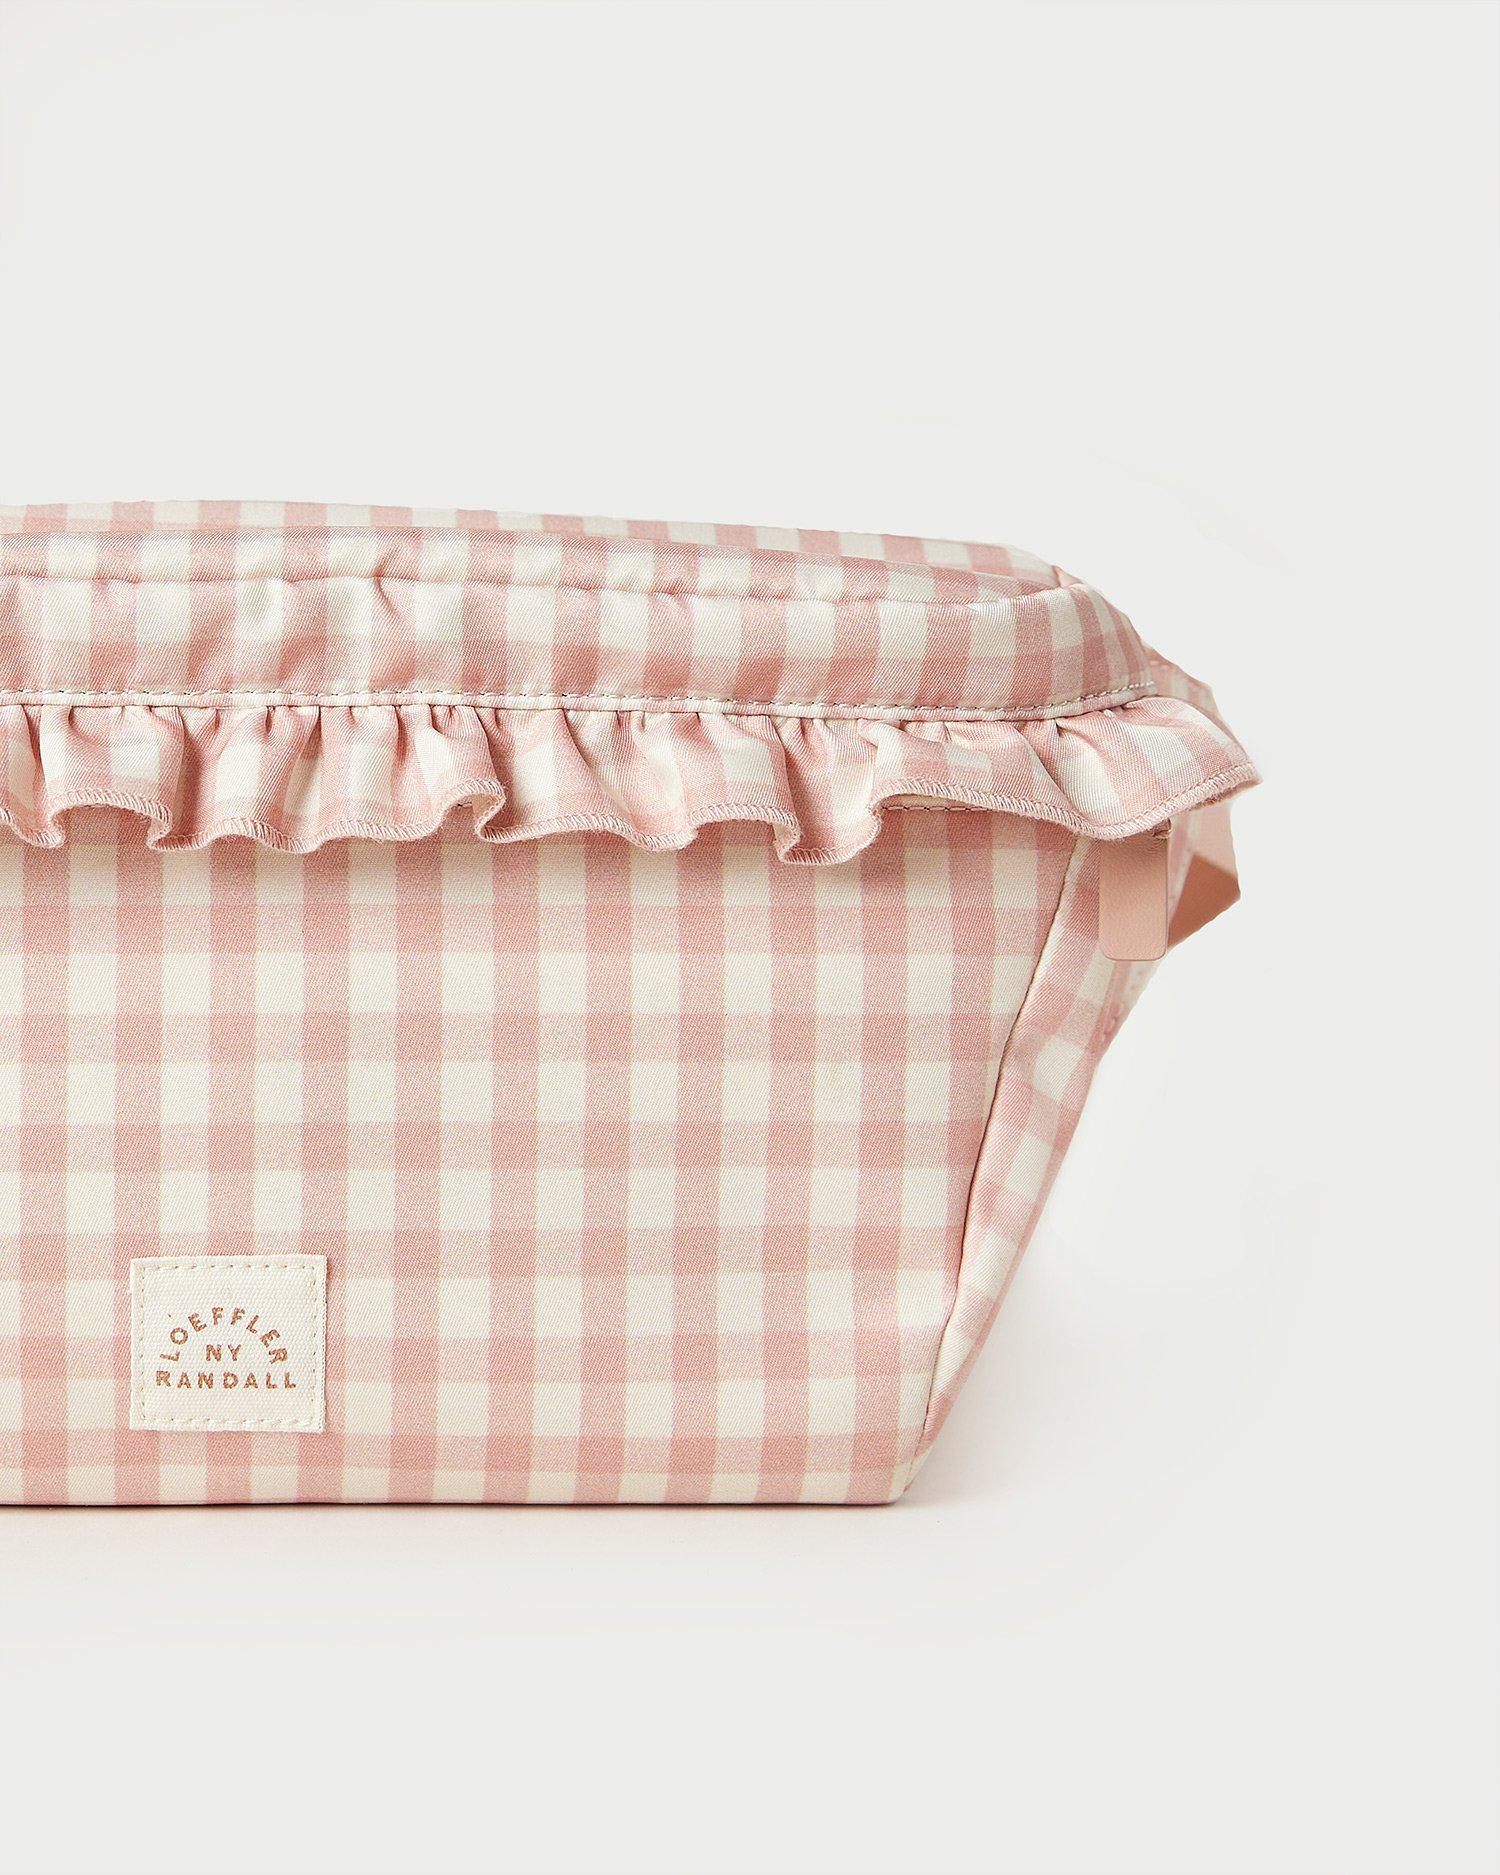 Shiloh Clay Gingham Commuter Pack 2